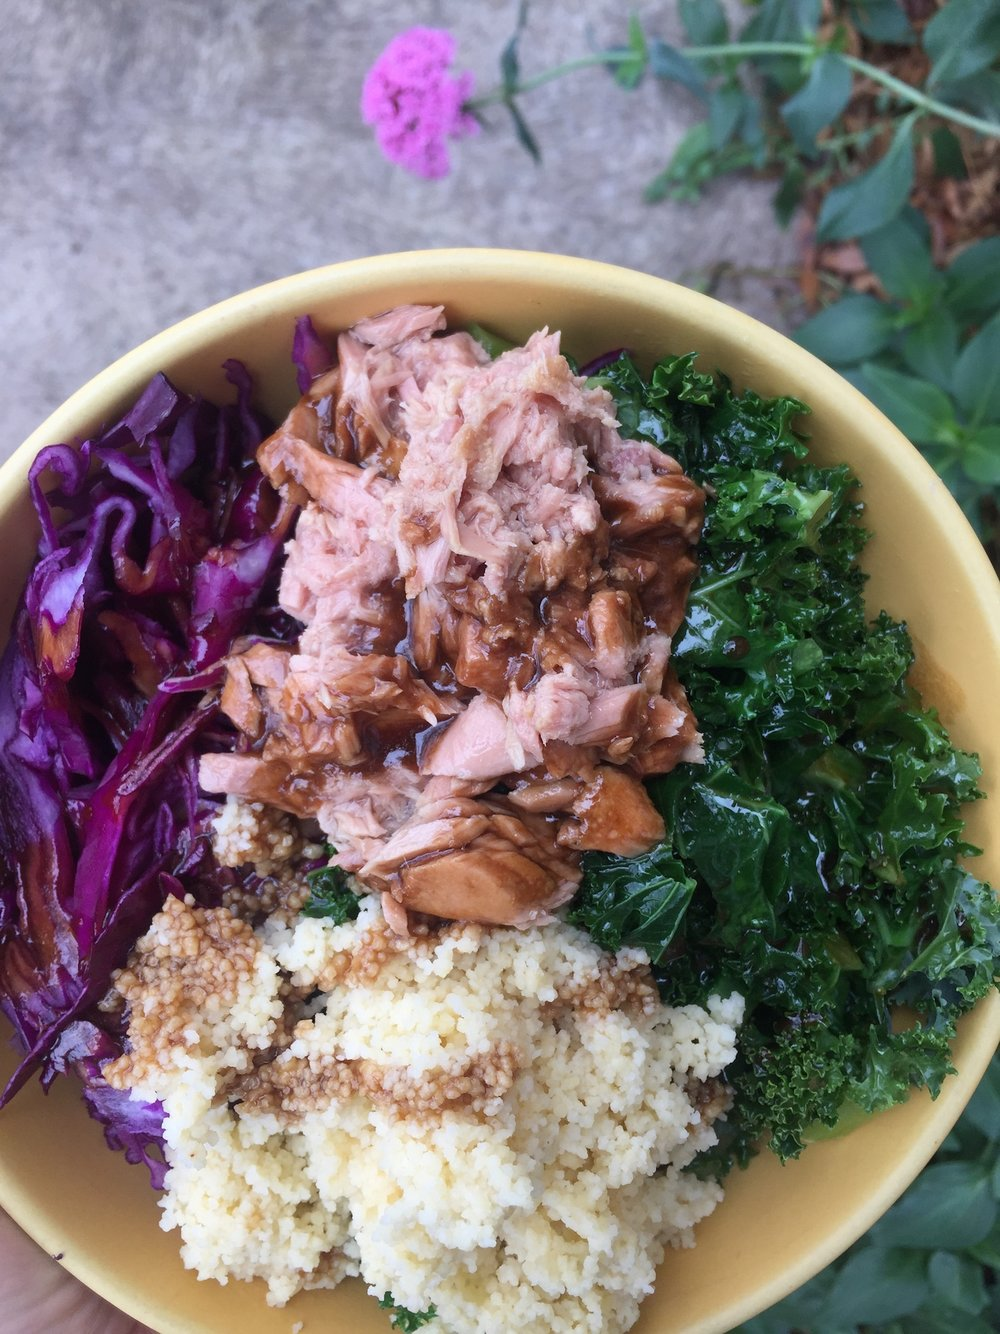 Tasty tuna nourish bowl with cous cous and sauteed kale.